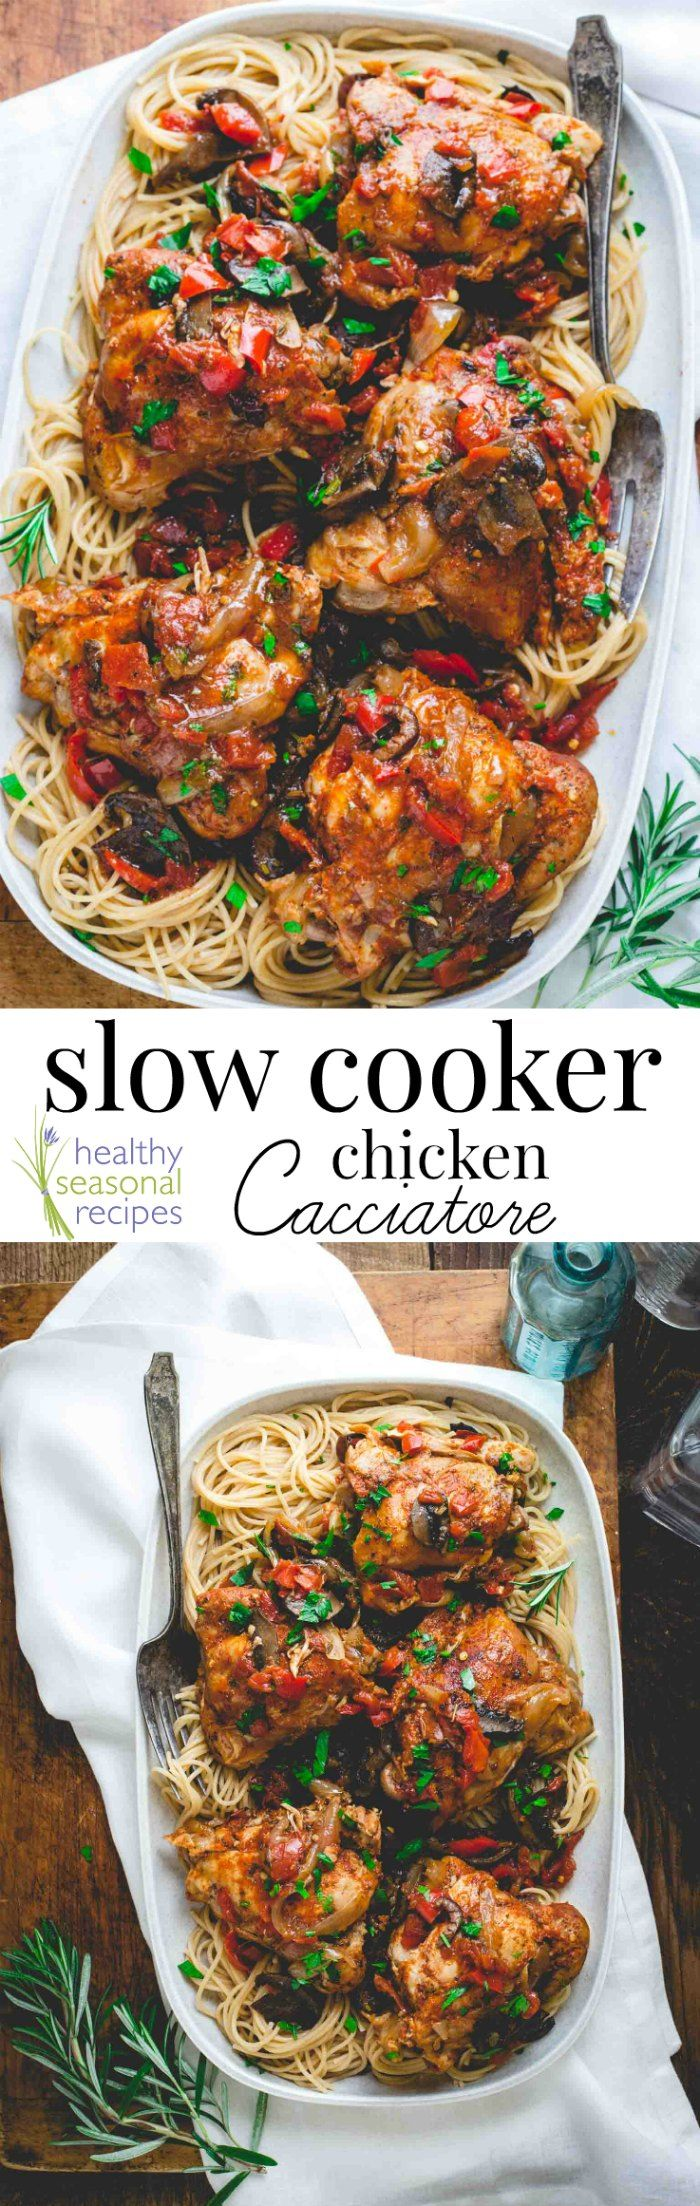 Blog Post At Healthy Seasonal Recipes This Slow Cooker Chicken Cacciatore Is The Latest In